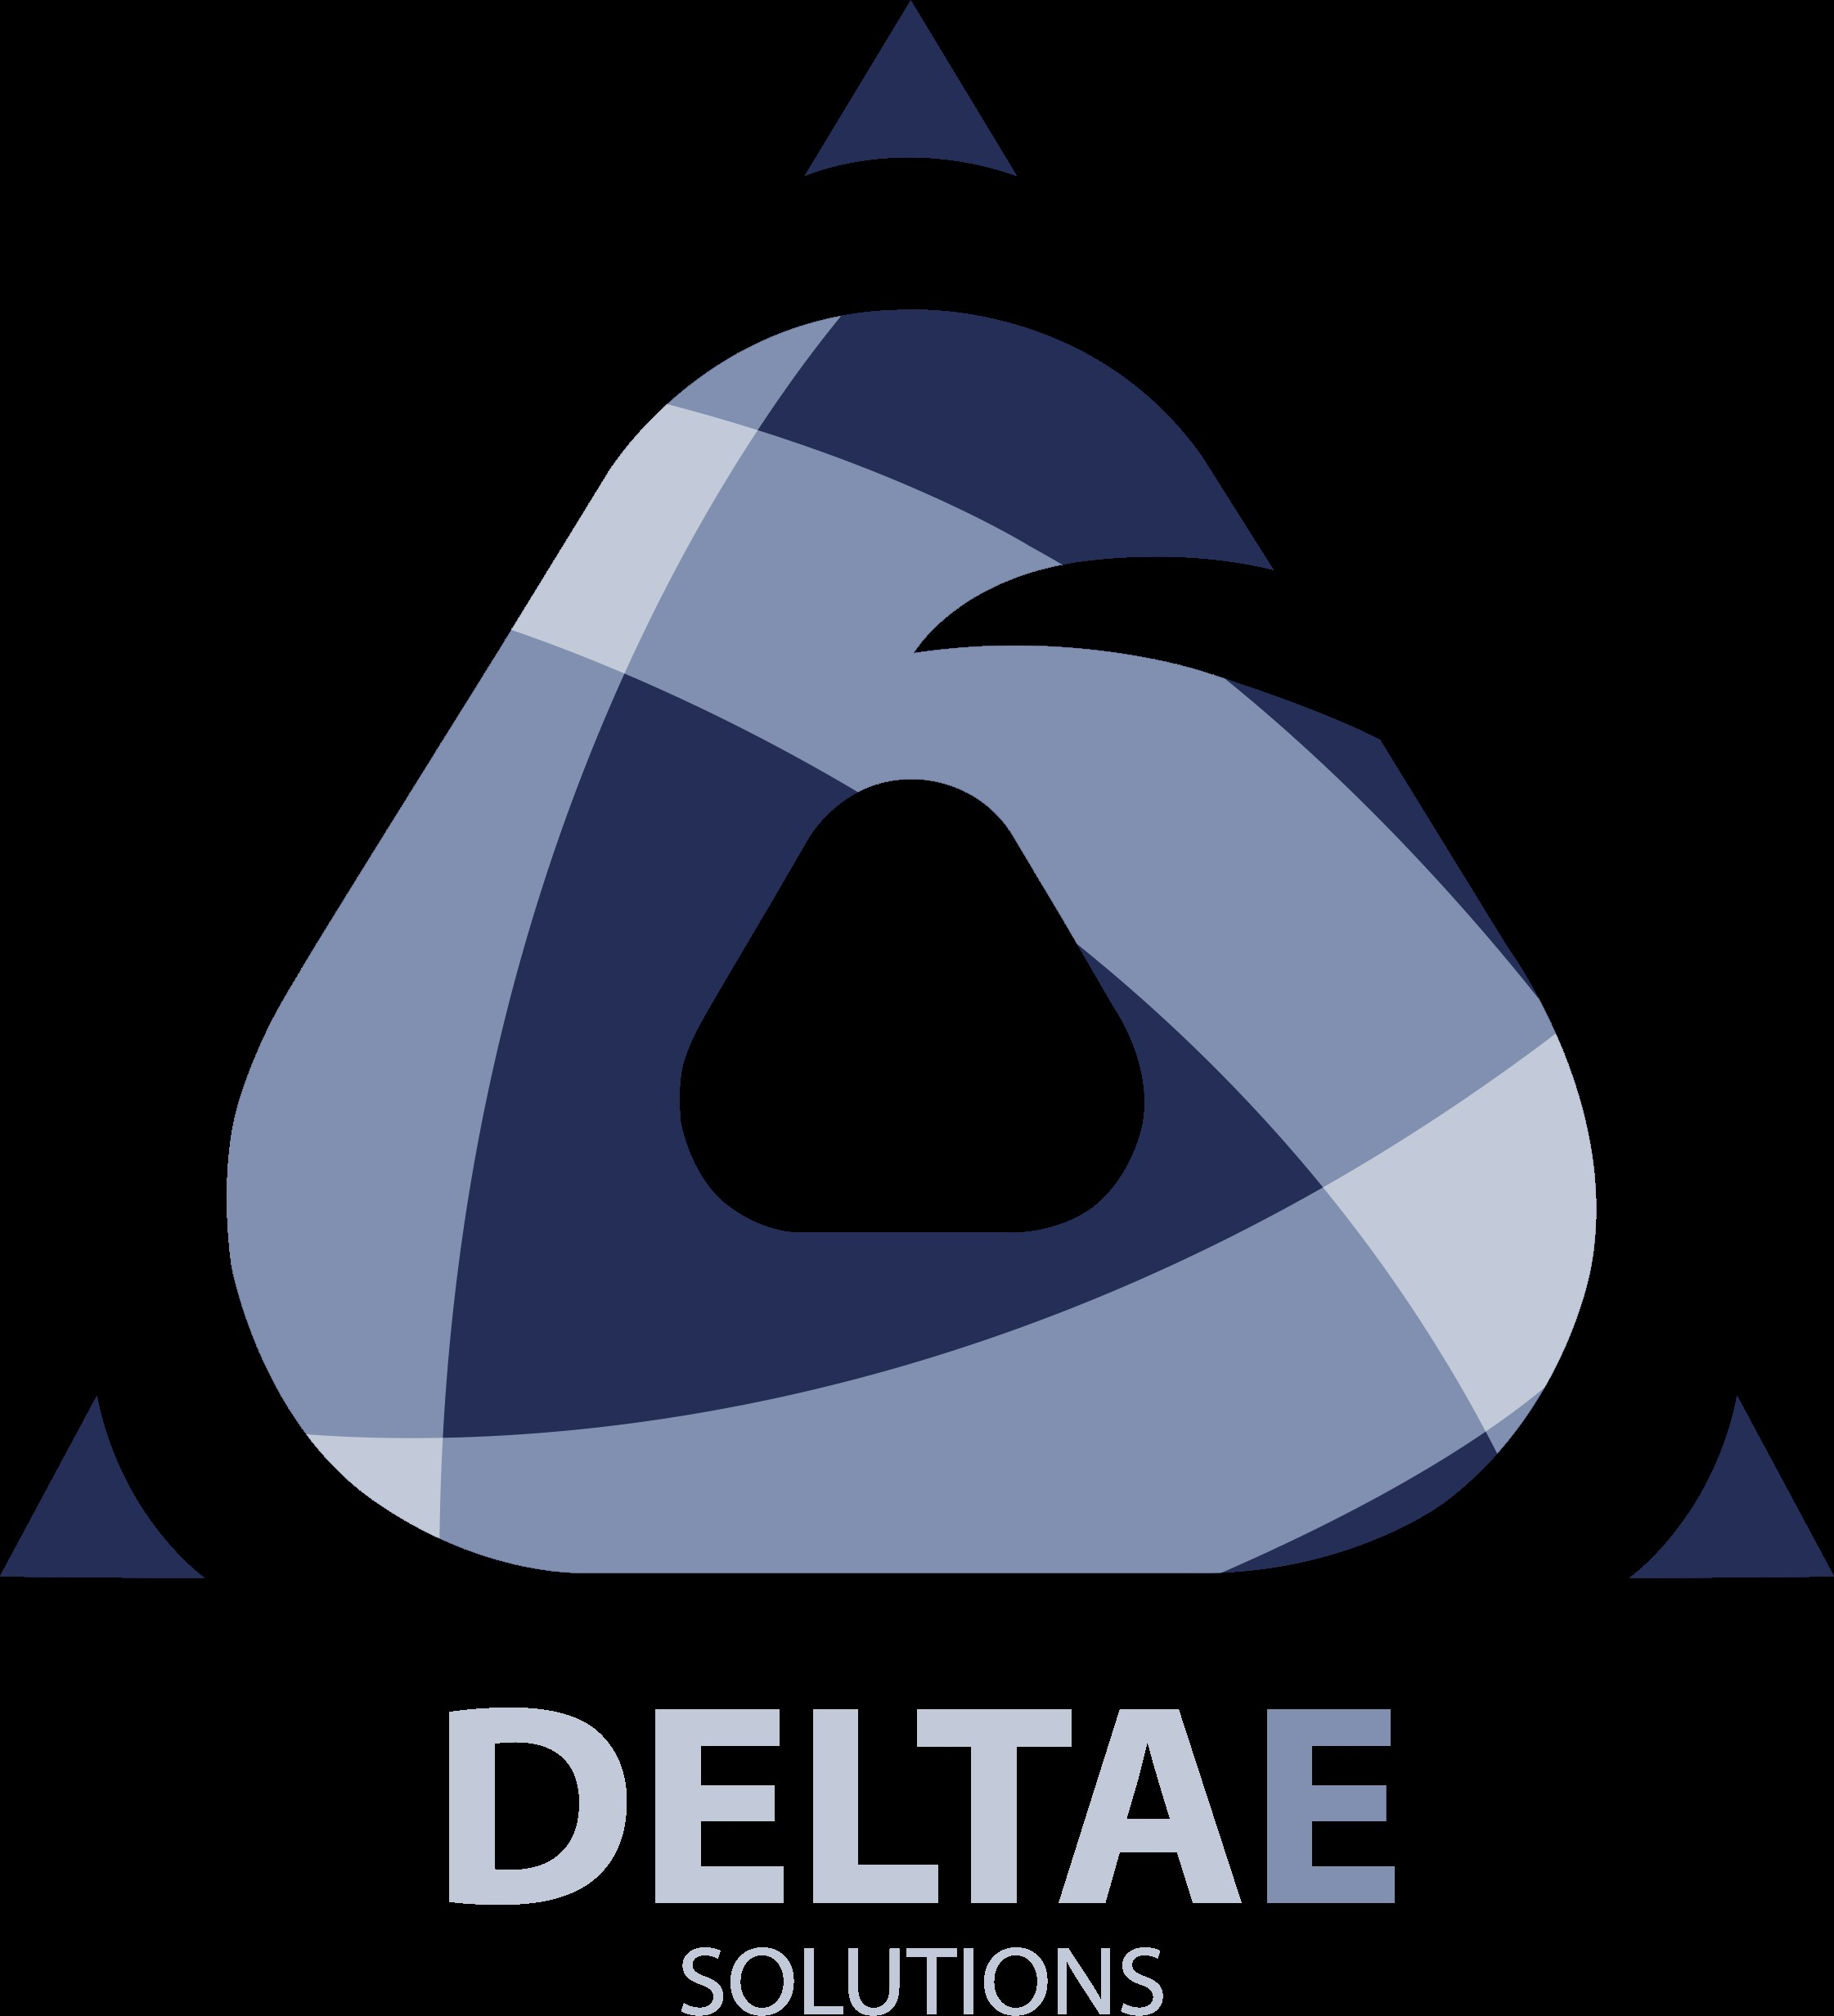 DeltaEinnovations